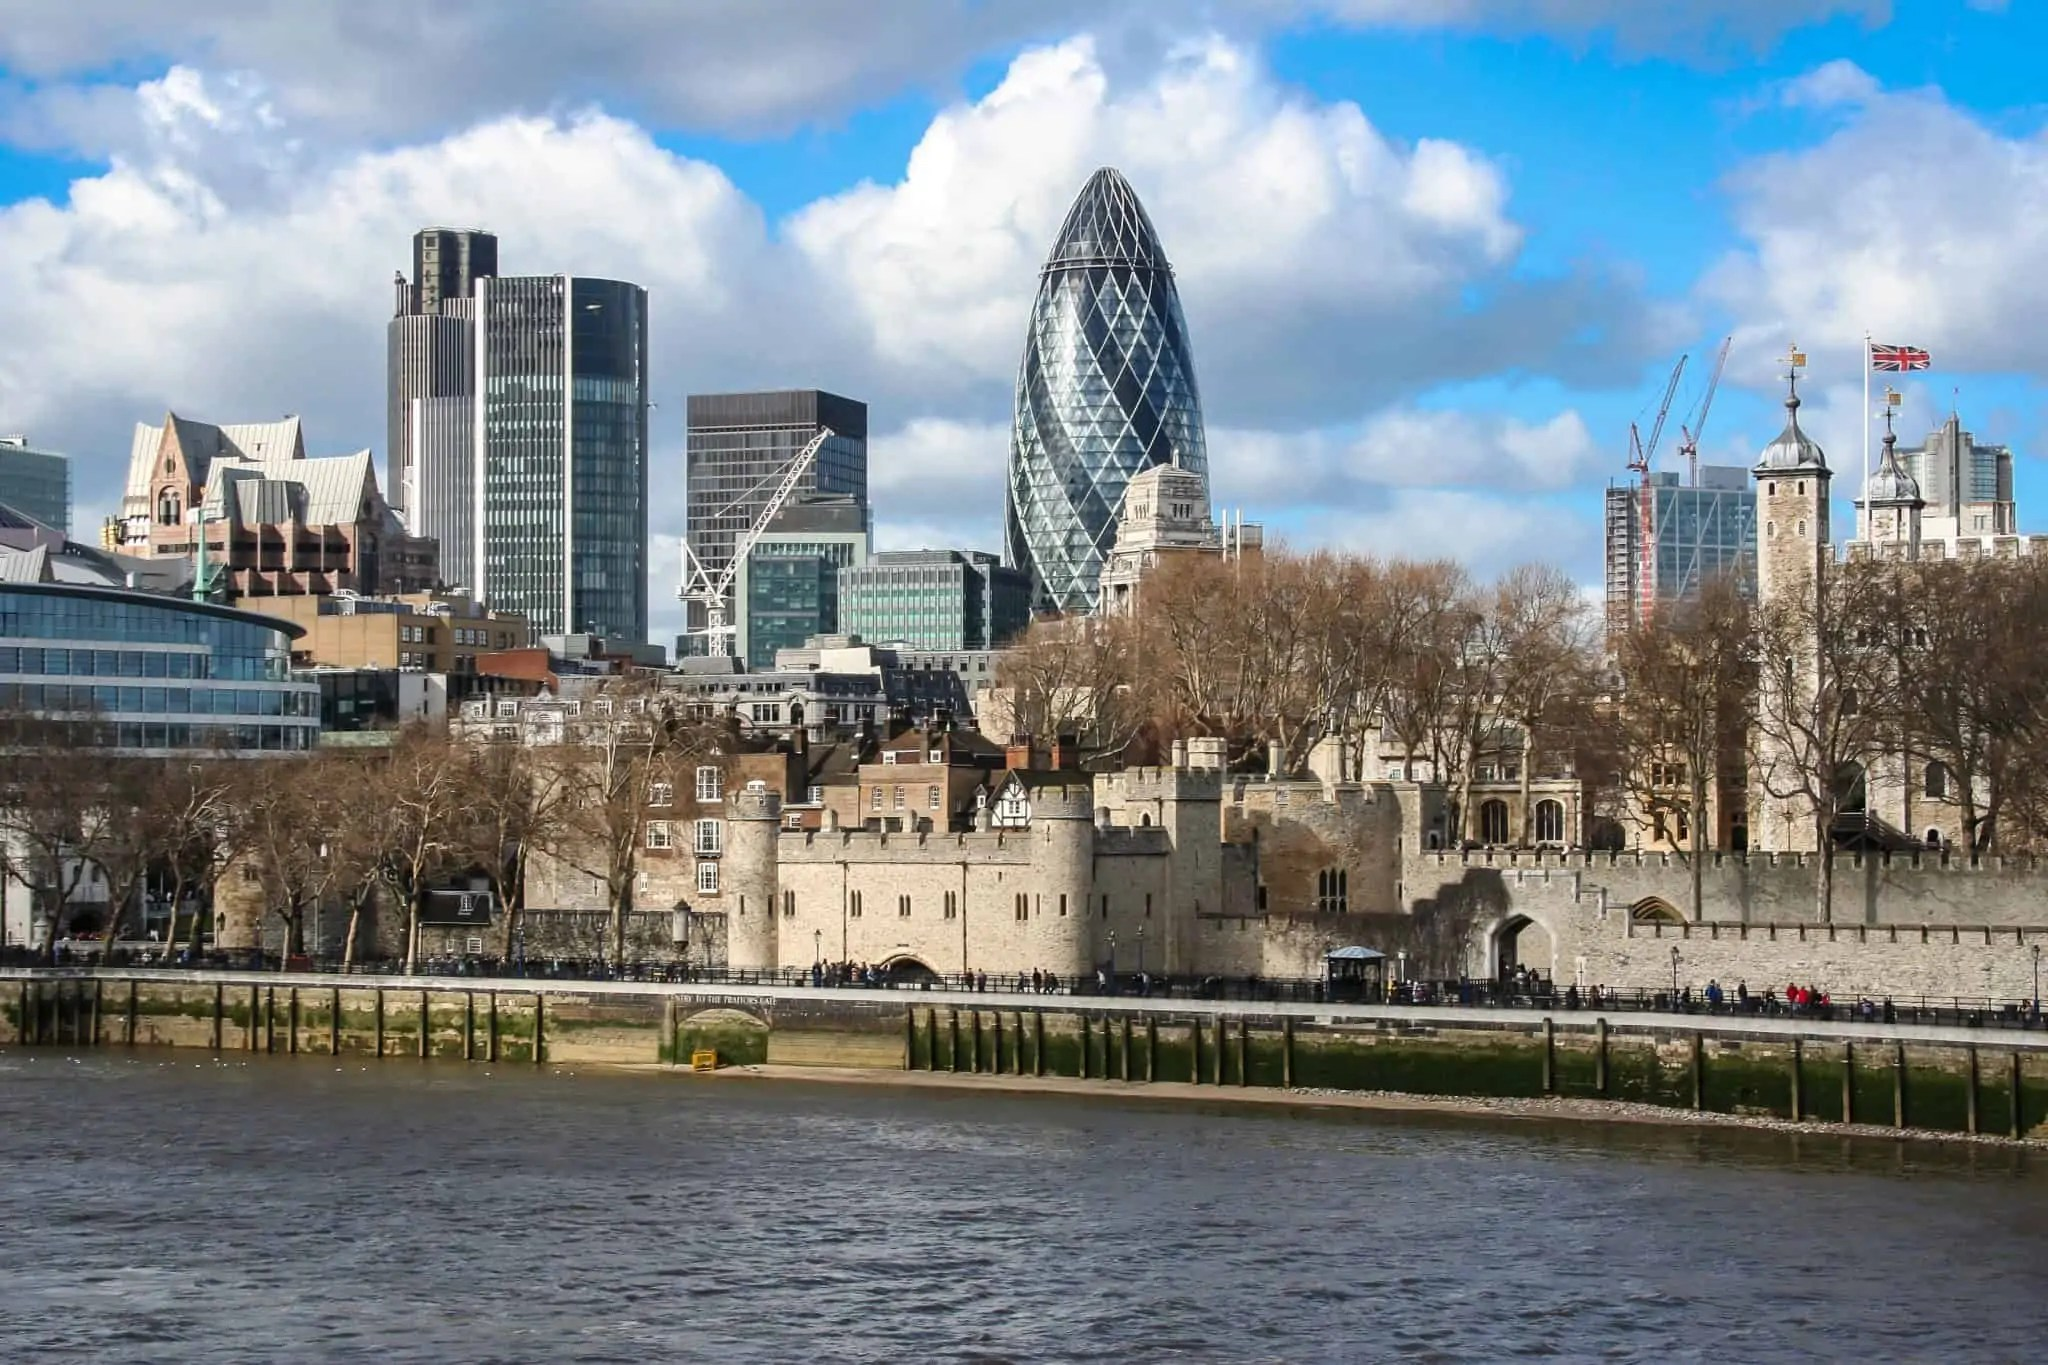 Visit The Fascinating Tower of London